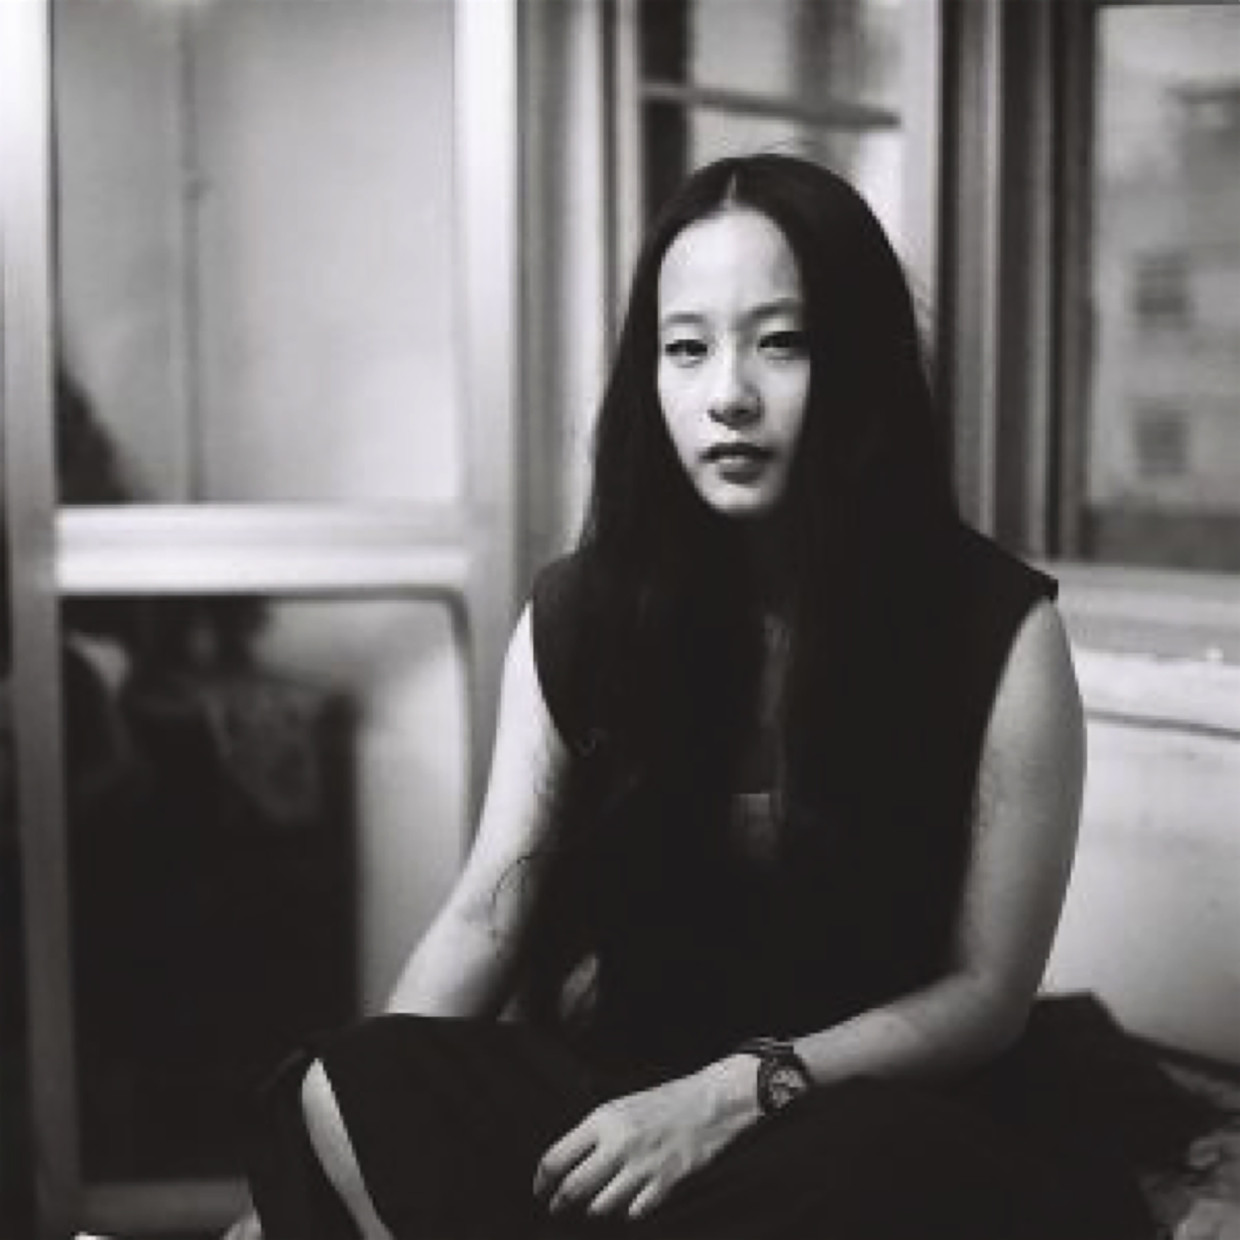 HE YINING He Yining (born 1986) is an independent writer and curator based in China. Yining is a graduate of...